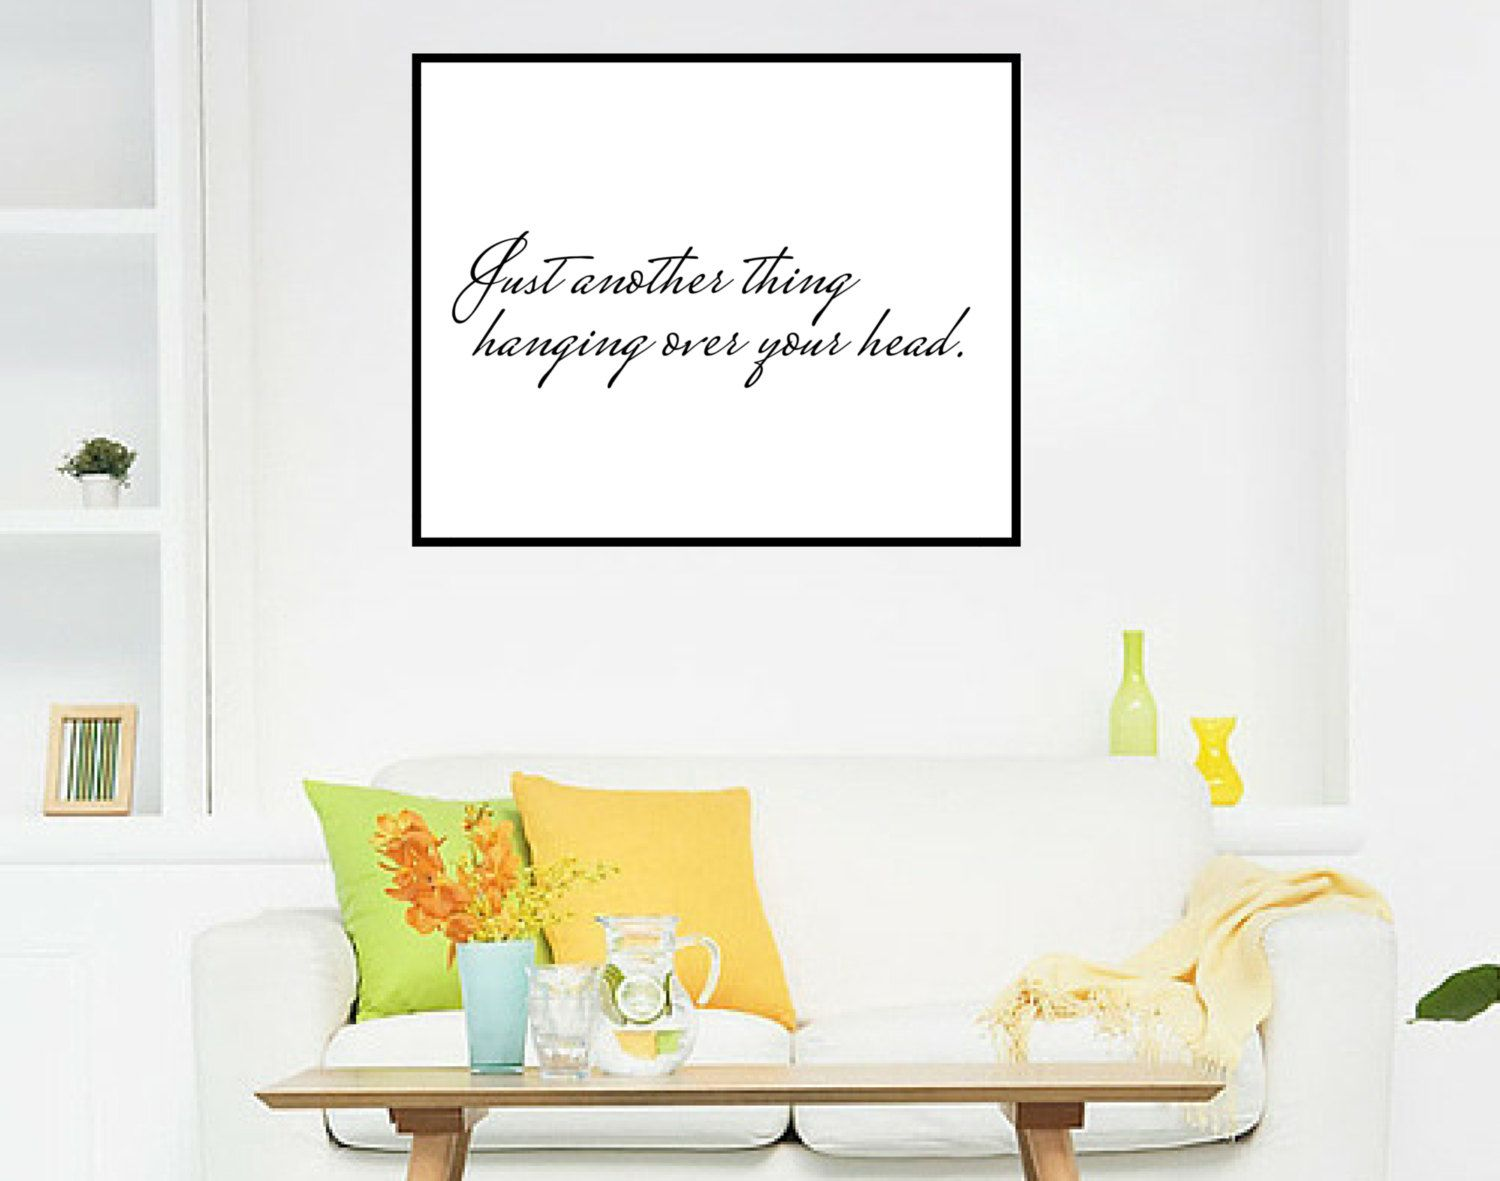 11x14 Art Print, Just Another Thing Hanging Over Your Head, Quote, Minimalist, Black and White, Quirky, Wall Art, Home Decor by BrightAndBonny on Etsy